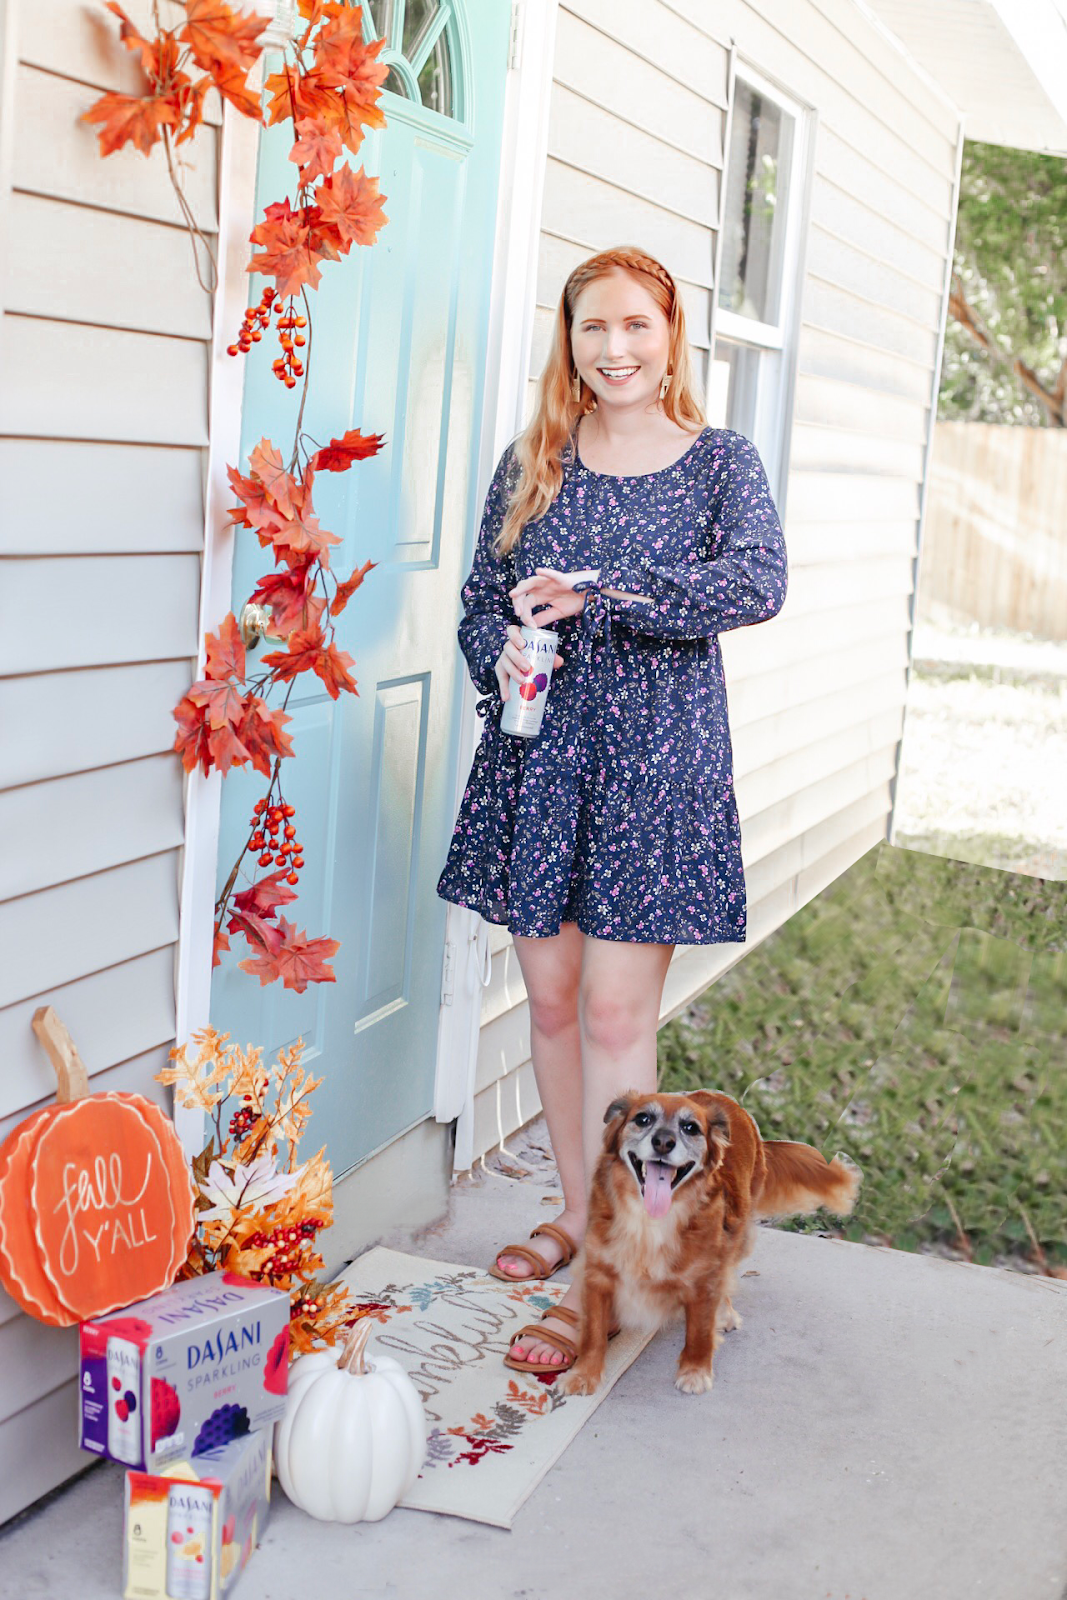 Fall Porch Decorating with Dasani Sparkling Water. Tampa Blogger, Amanda Burrows, Affordable by Amanda shares her fall porch decoring leaves and white pumpkins. She is also drinking Dasani Sparkling Berry sparkling water while she decors the front porch for fall.